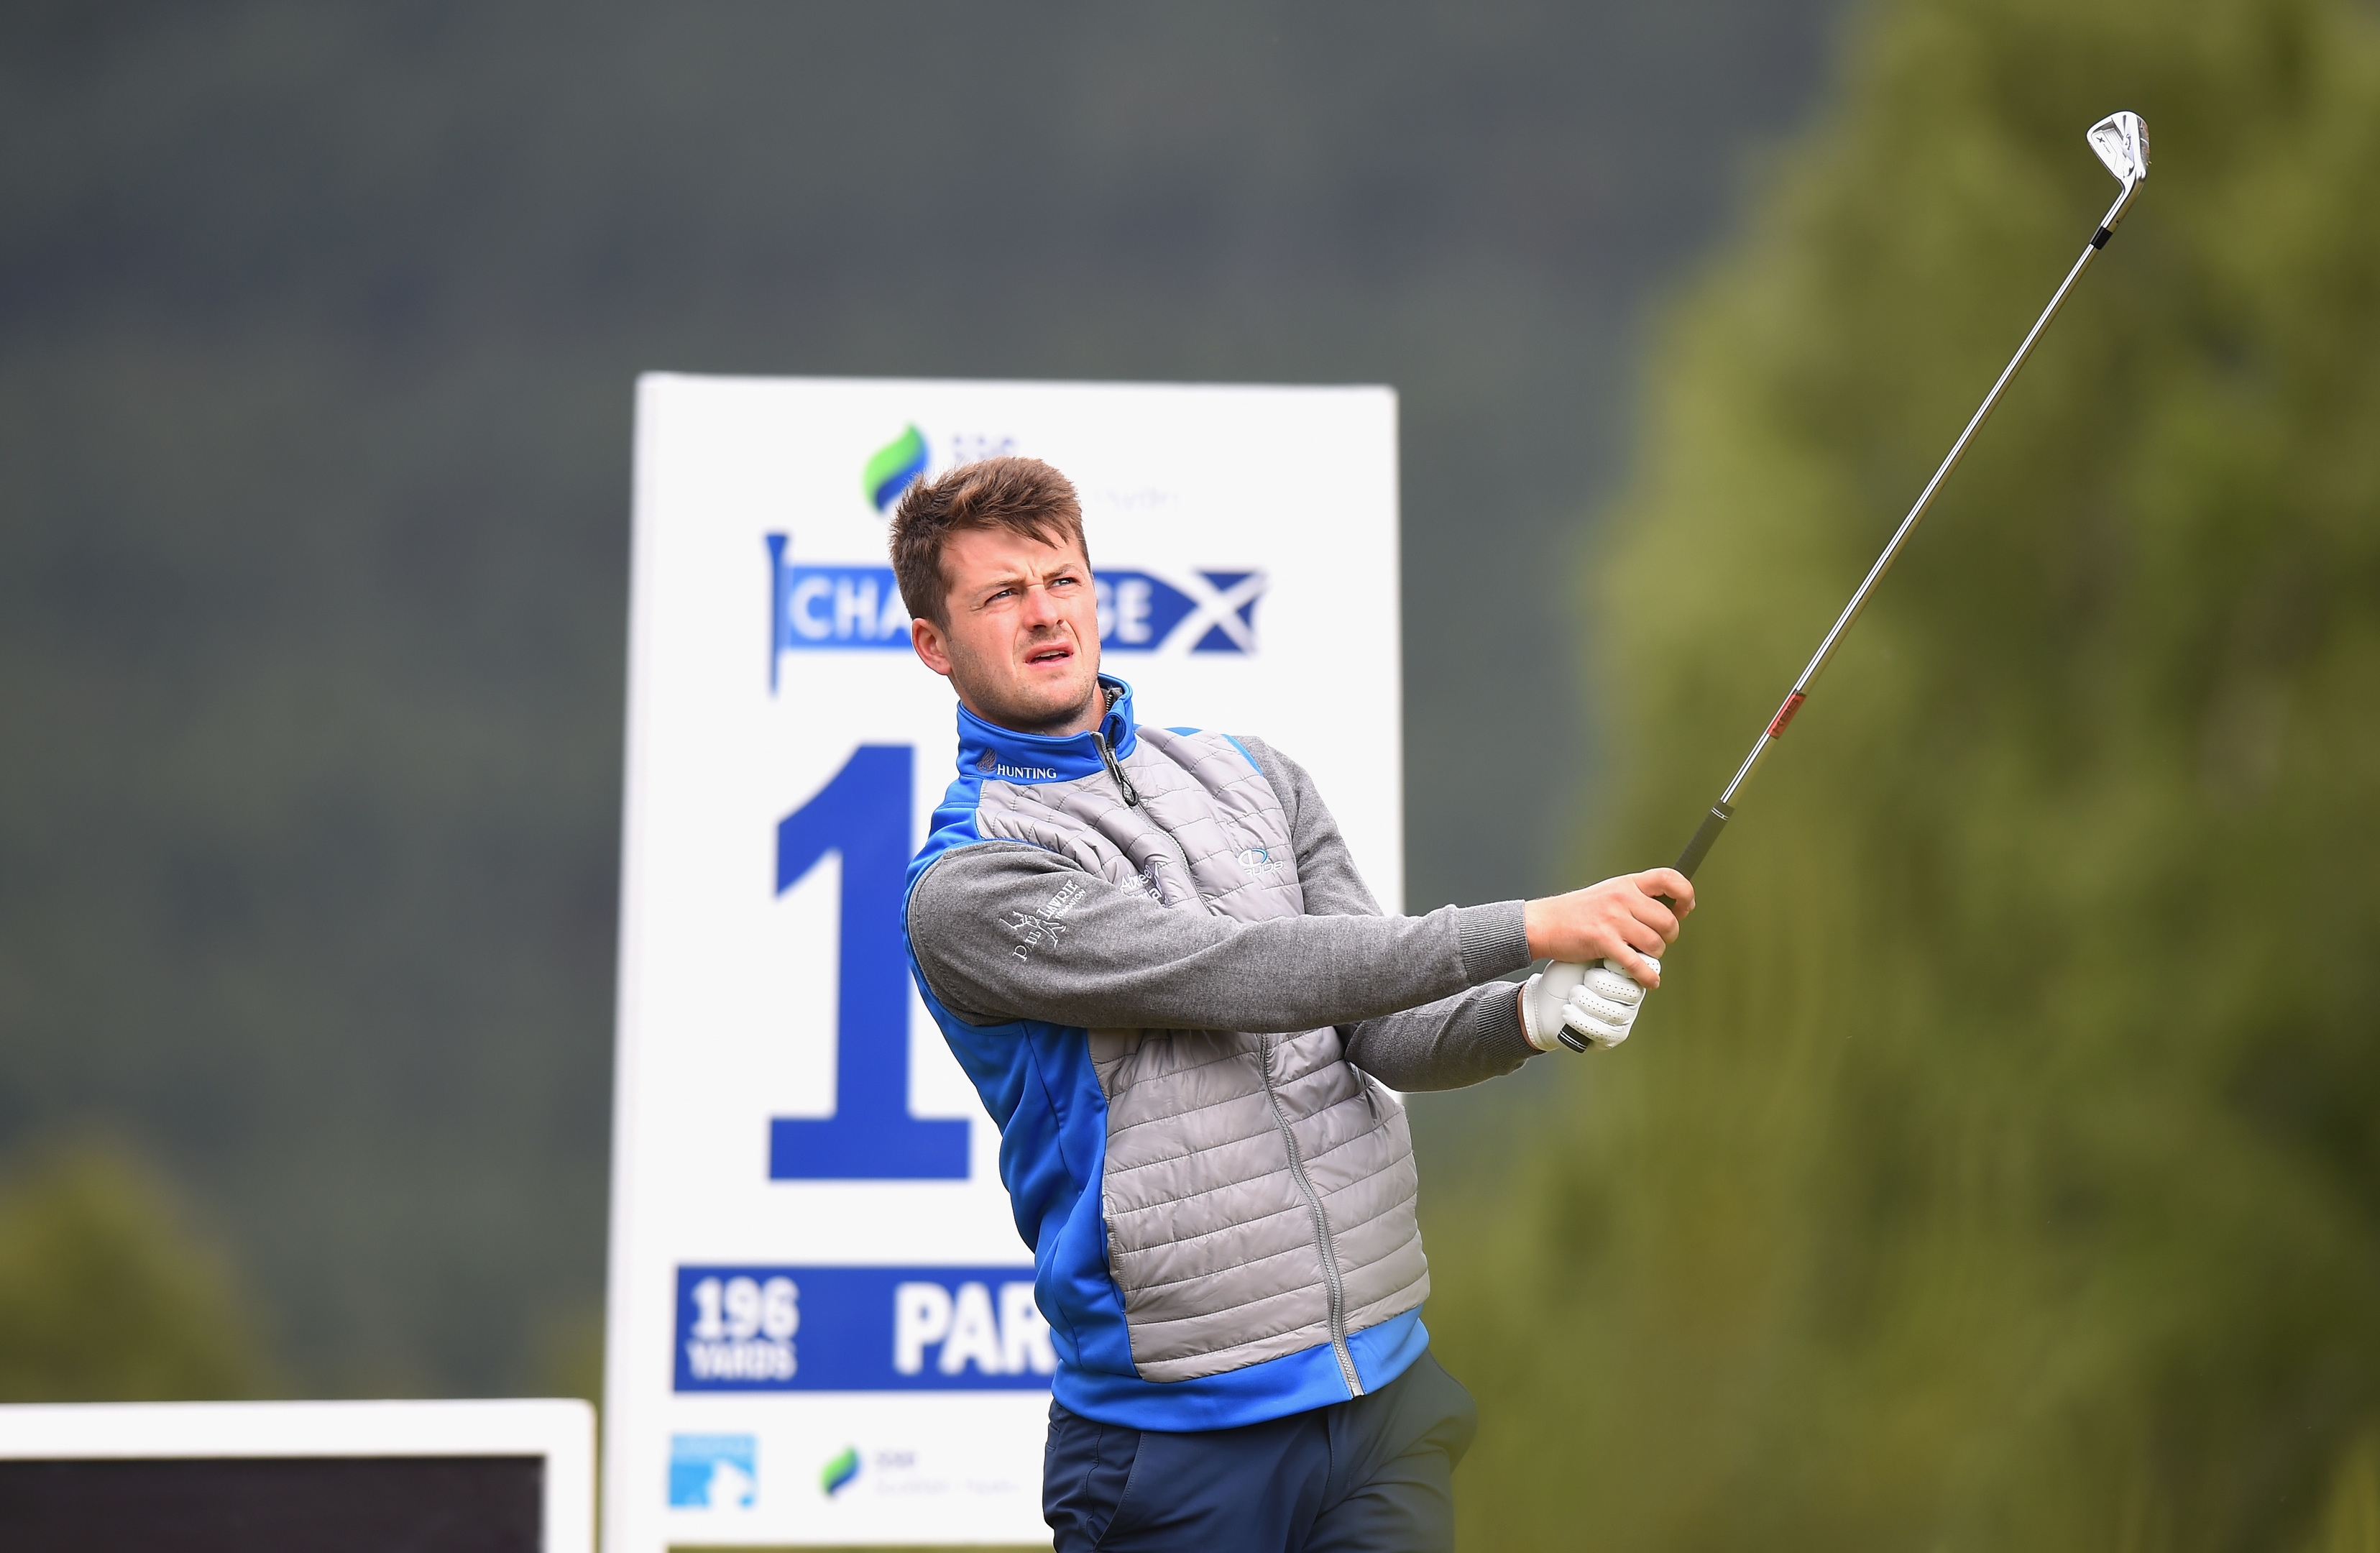 David Law watches his tee shot at the 10th at Spey Valley.